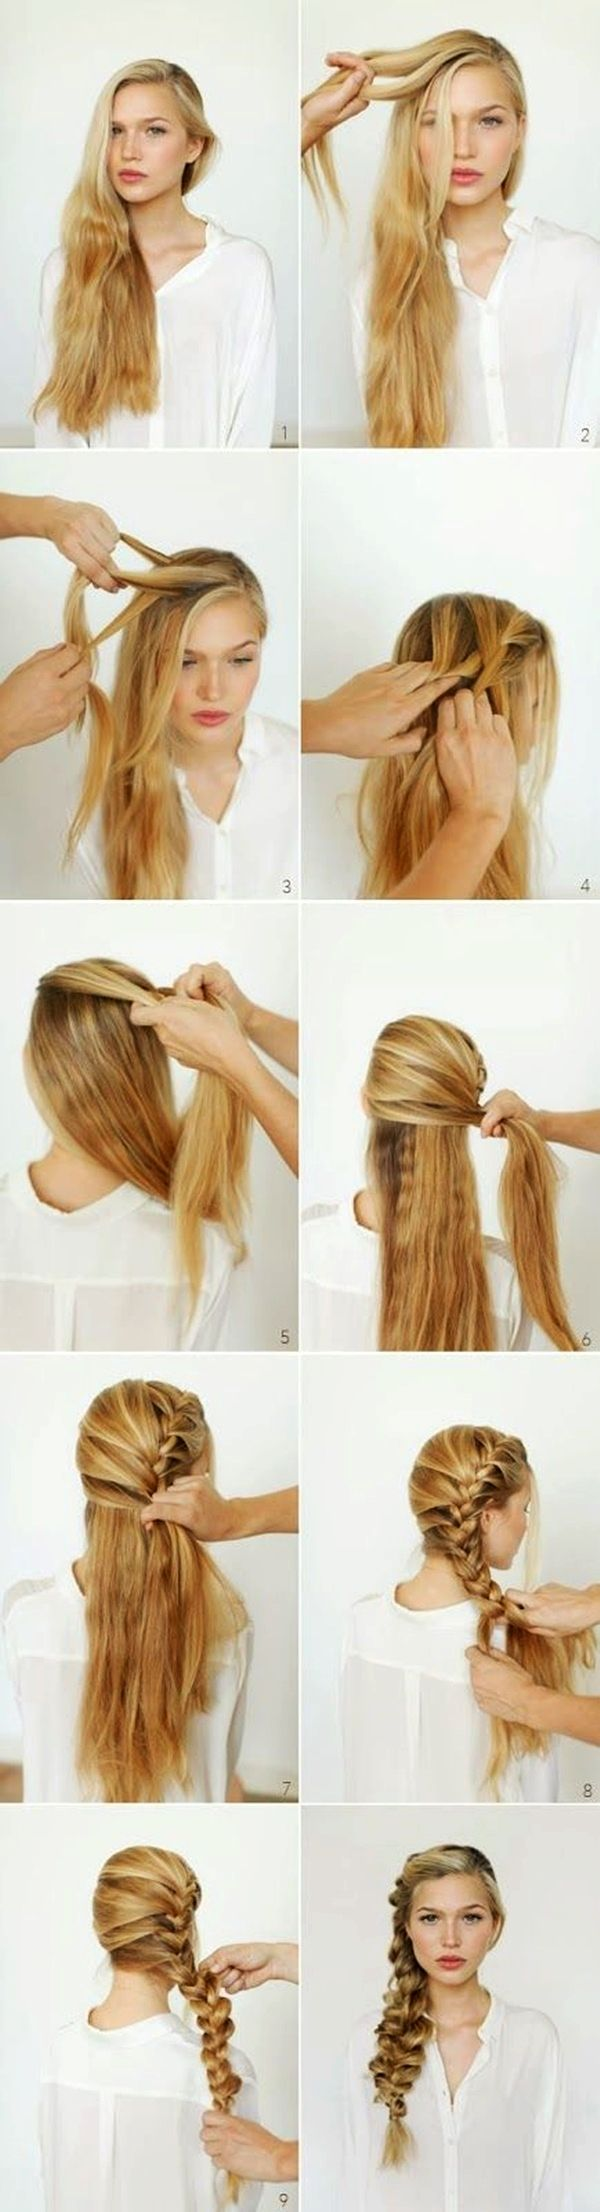 Easy Step By Step Hairstyles for Long Hair7